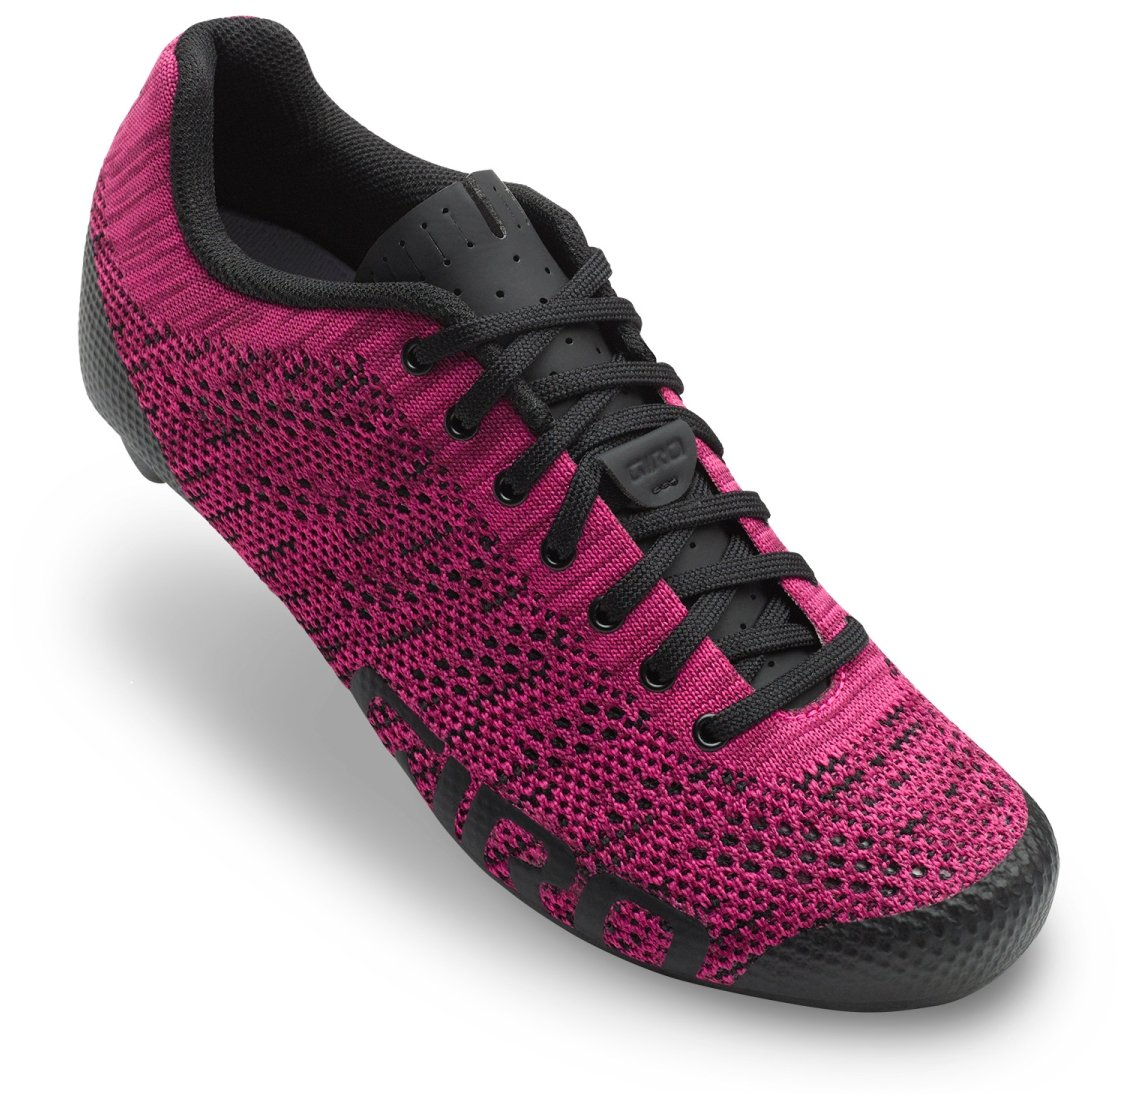 Giro Empire E70 Knit Cycling Shoes - Women's Berry/Bright Pink 38.5 by Giro